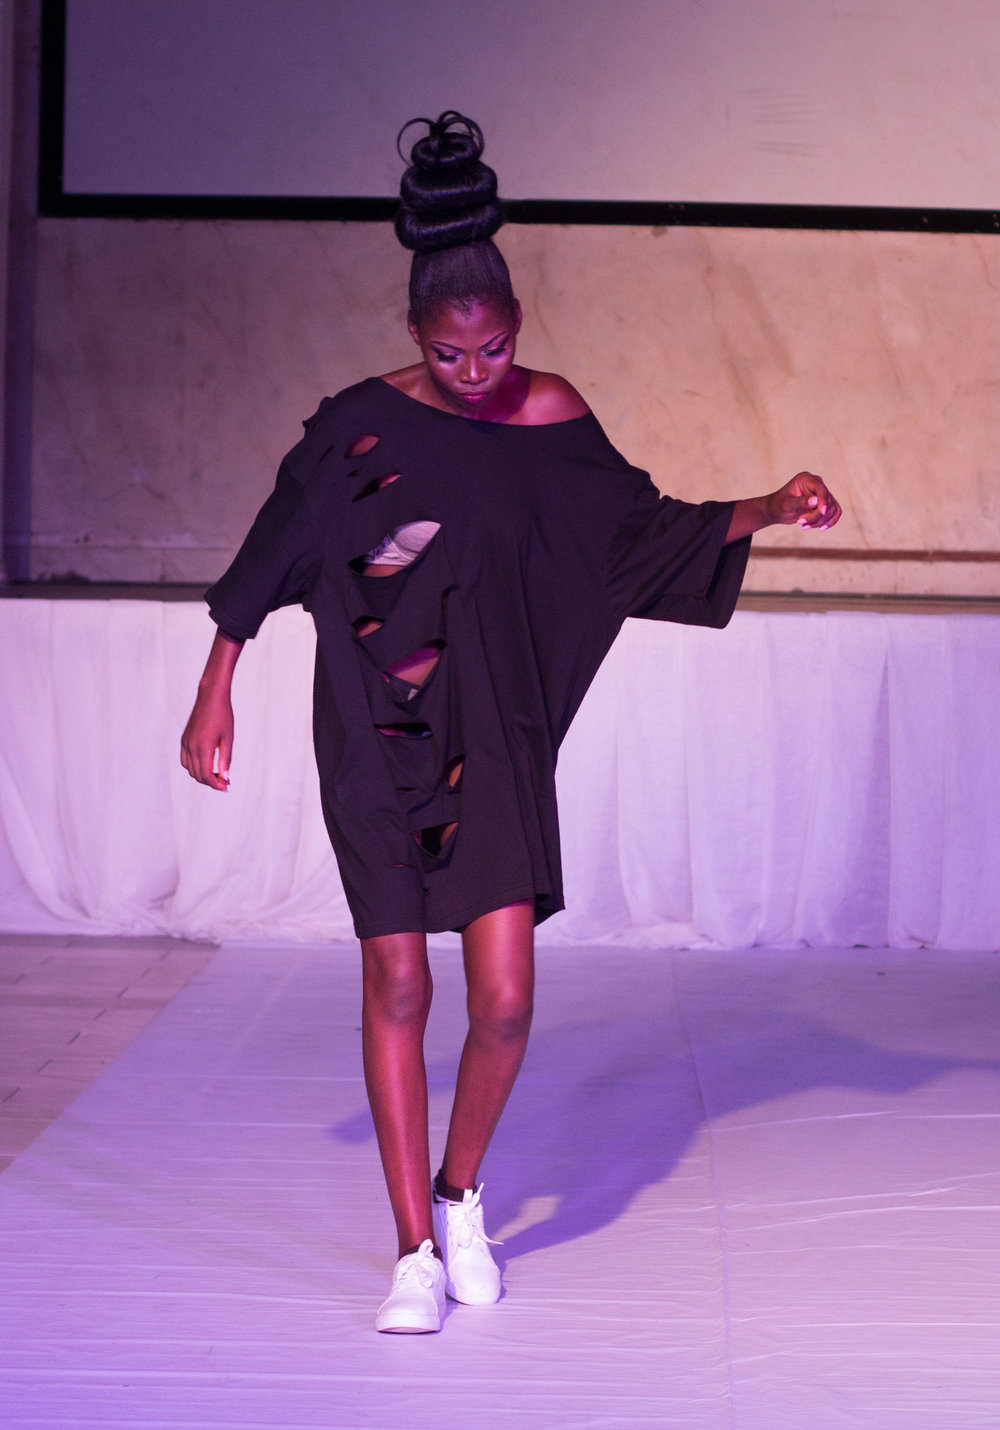 Nigerian Model @ The Eleventh Fashion Show wearing VonRay Designs Distressed Tee Dress ;PHOTOGRAPHER- Ebiye Wilson Jeke of Wilson Photography (@wilsonjekephotography)